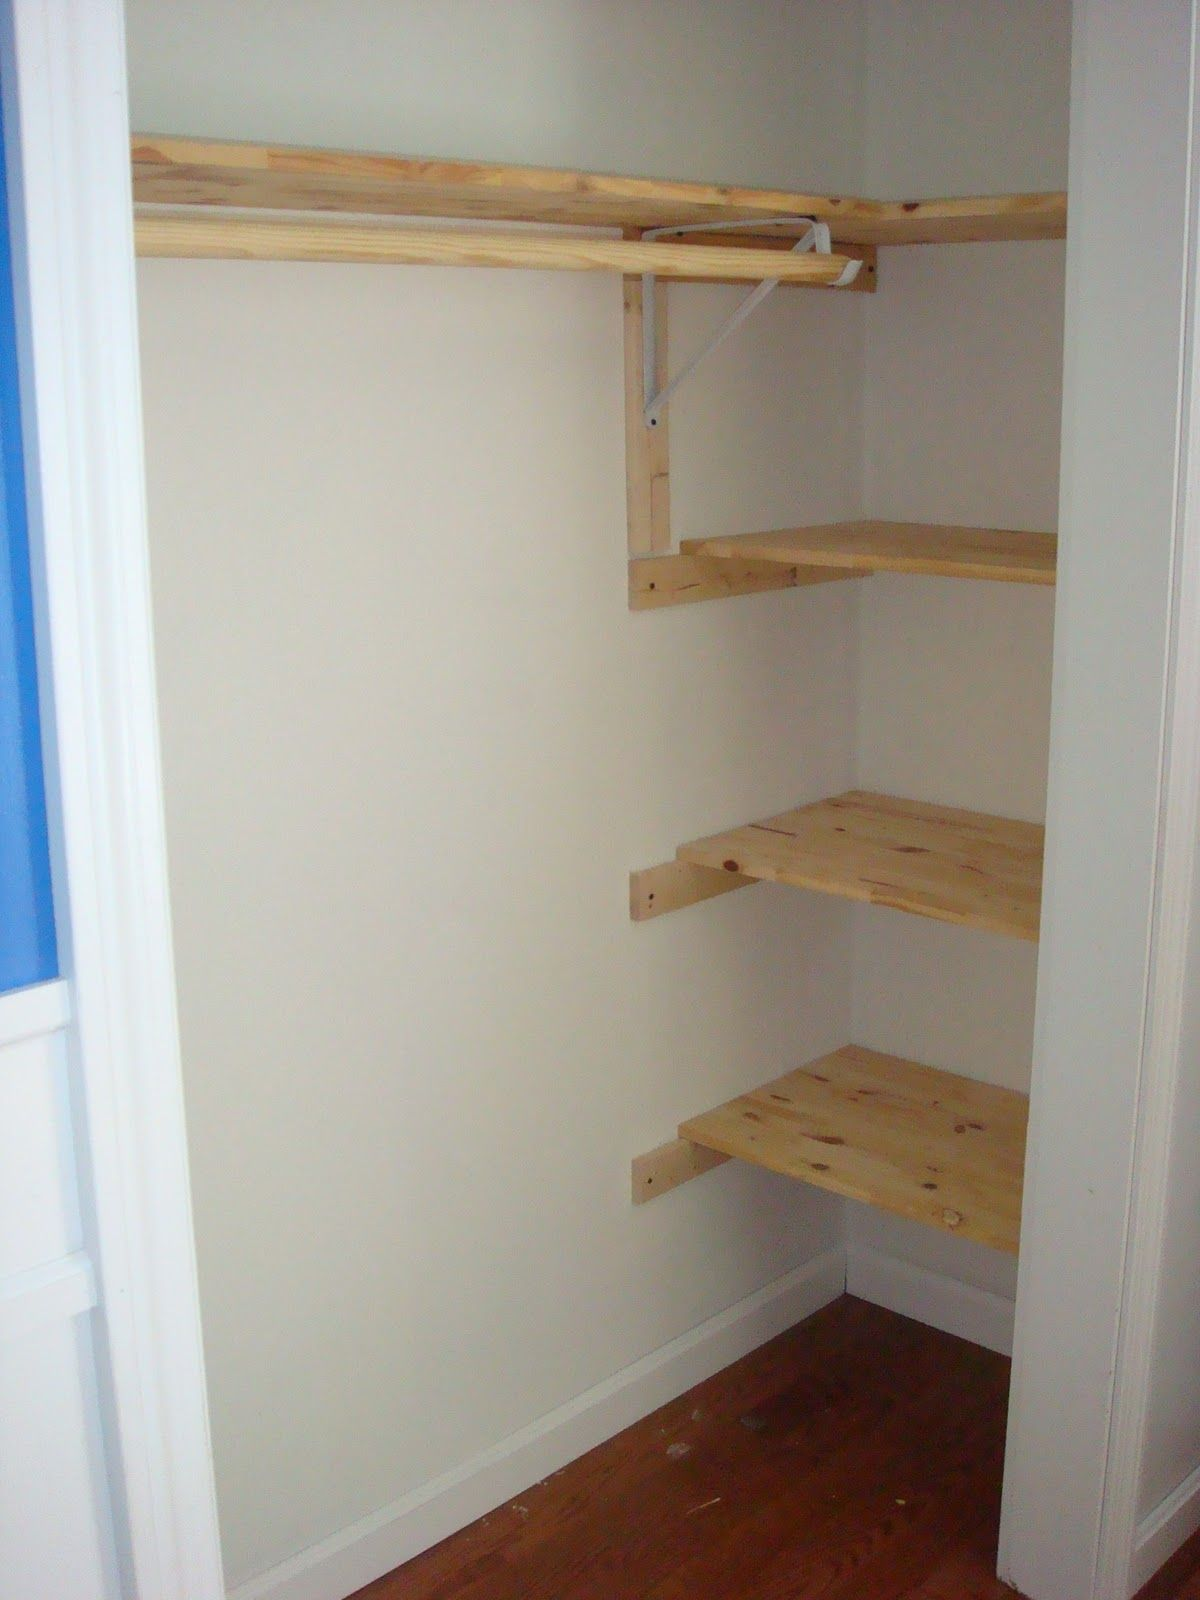 organizer to in size full shelving store shelves how a build making closet garage designs large of